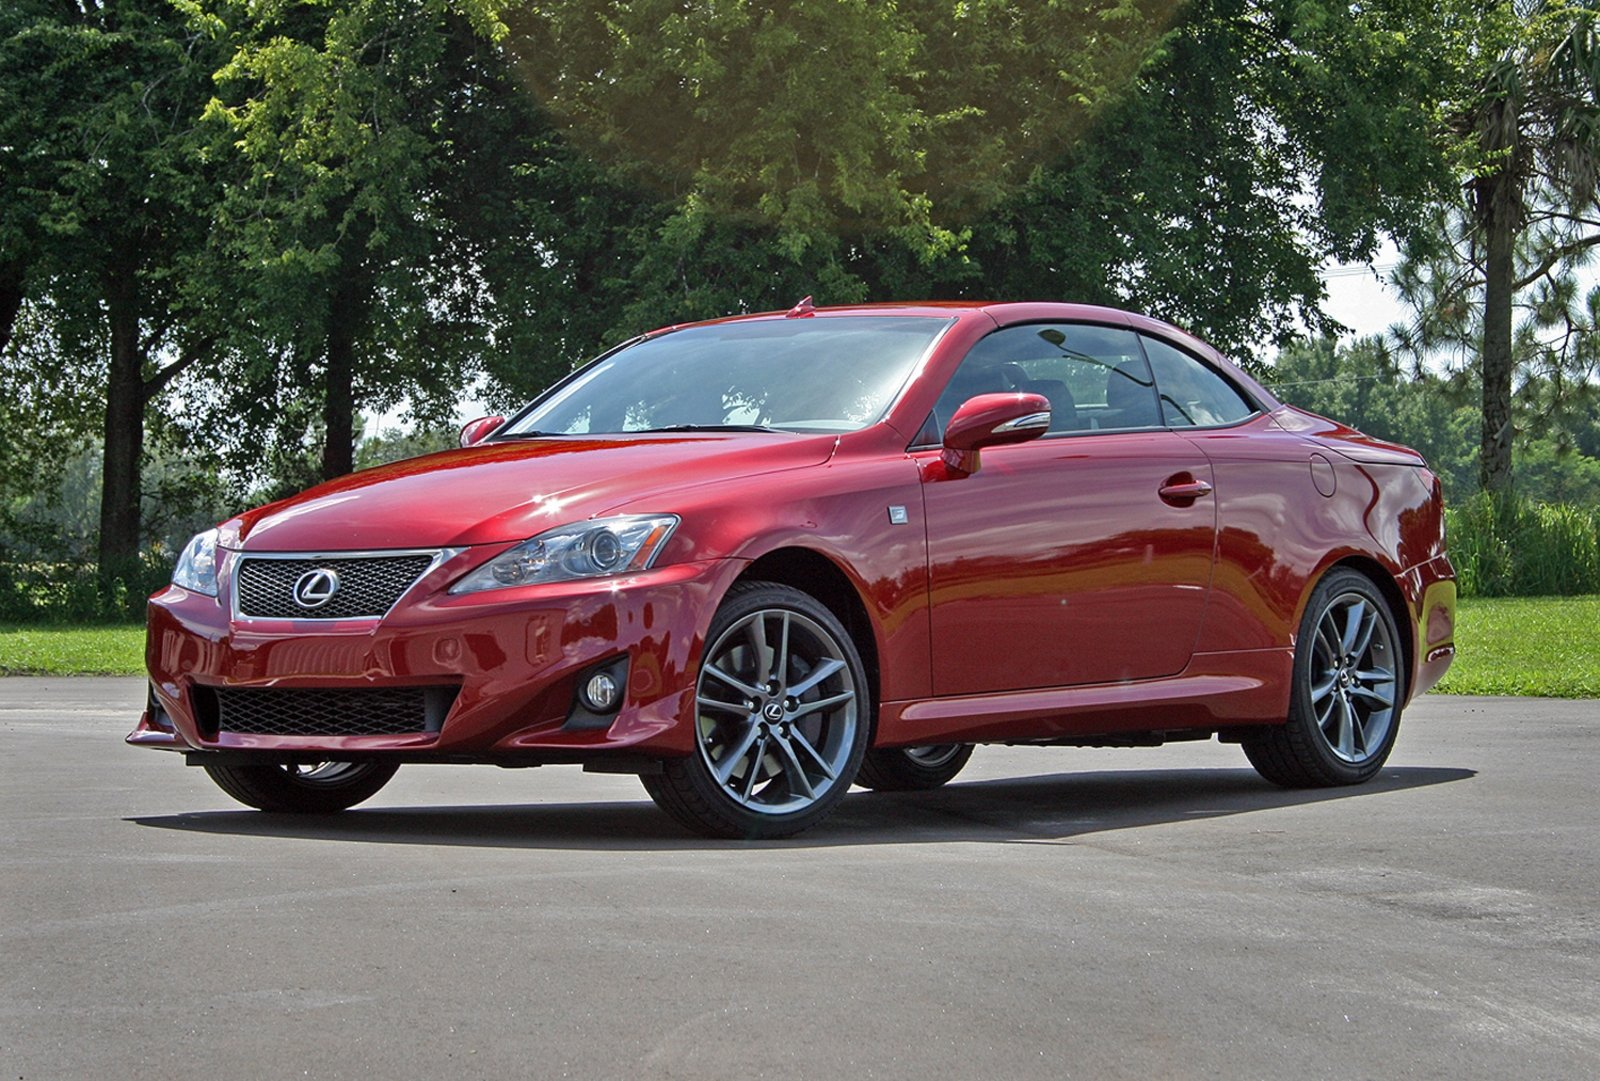 2014 lexus is 350c f sport driven review top speed. Black Bedroom Furniture Sets. Home Design Ideas